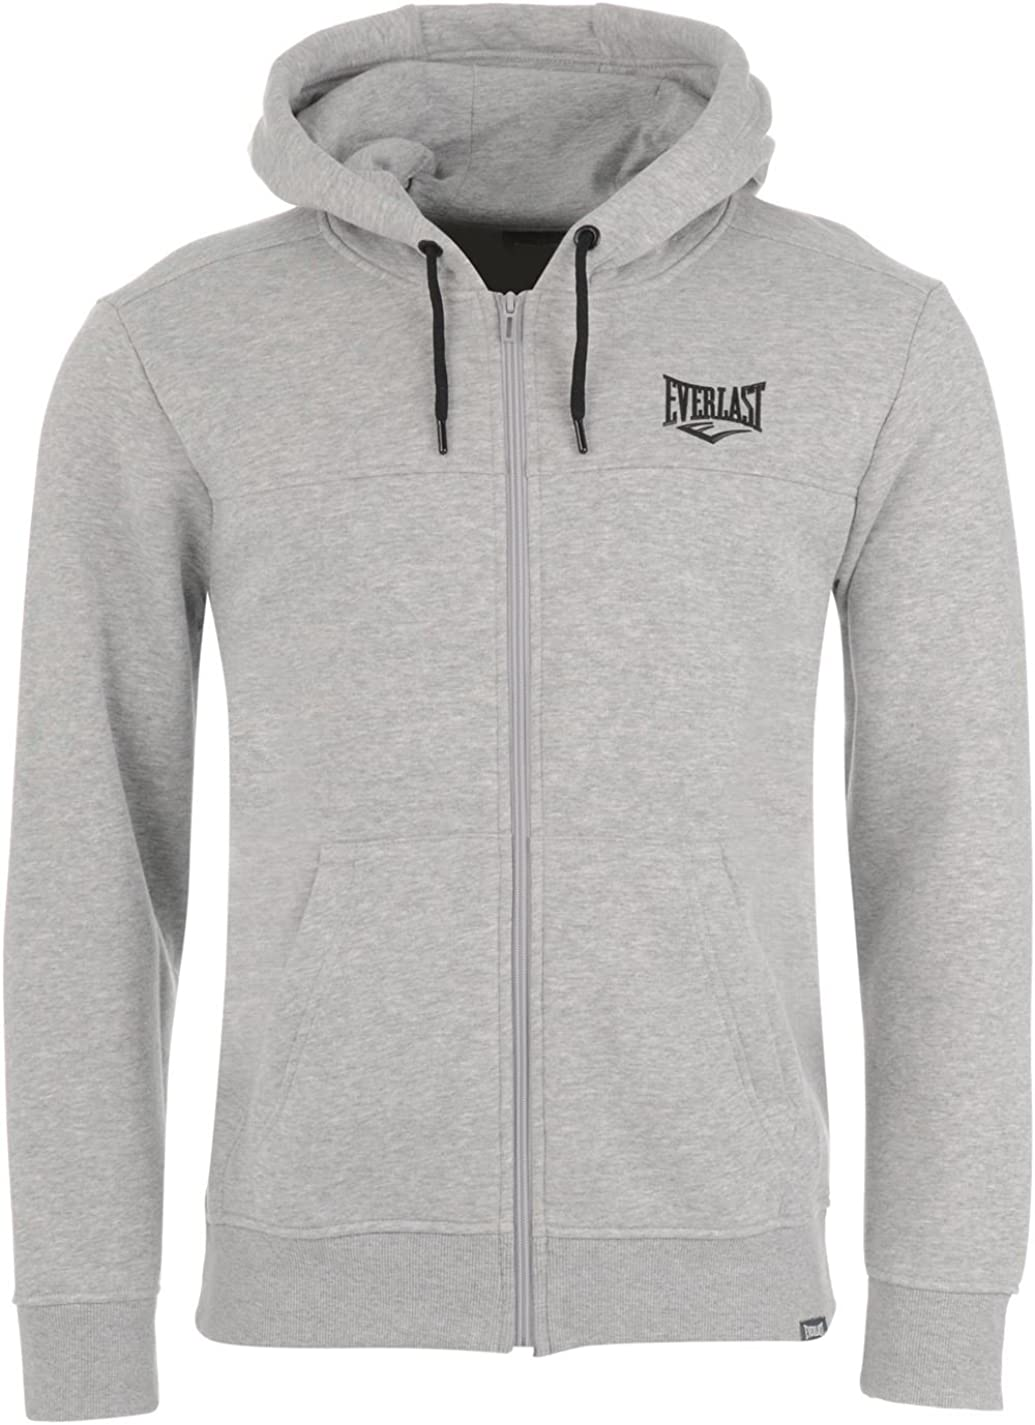 Everlast Zip Hoody Mens Gents Hoodie Hooded Top Zipped Warm Drawstring